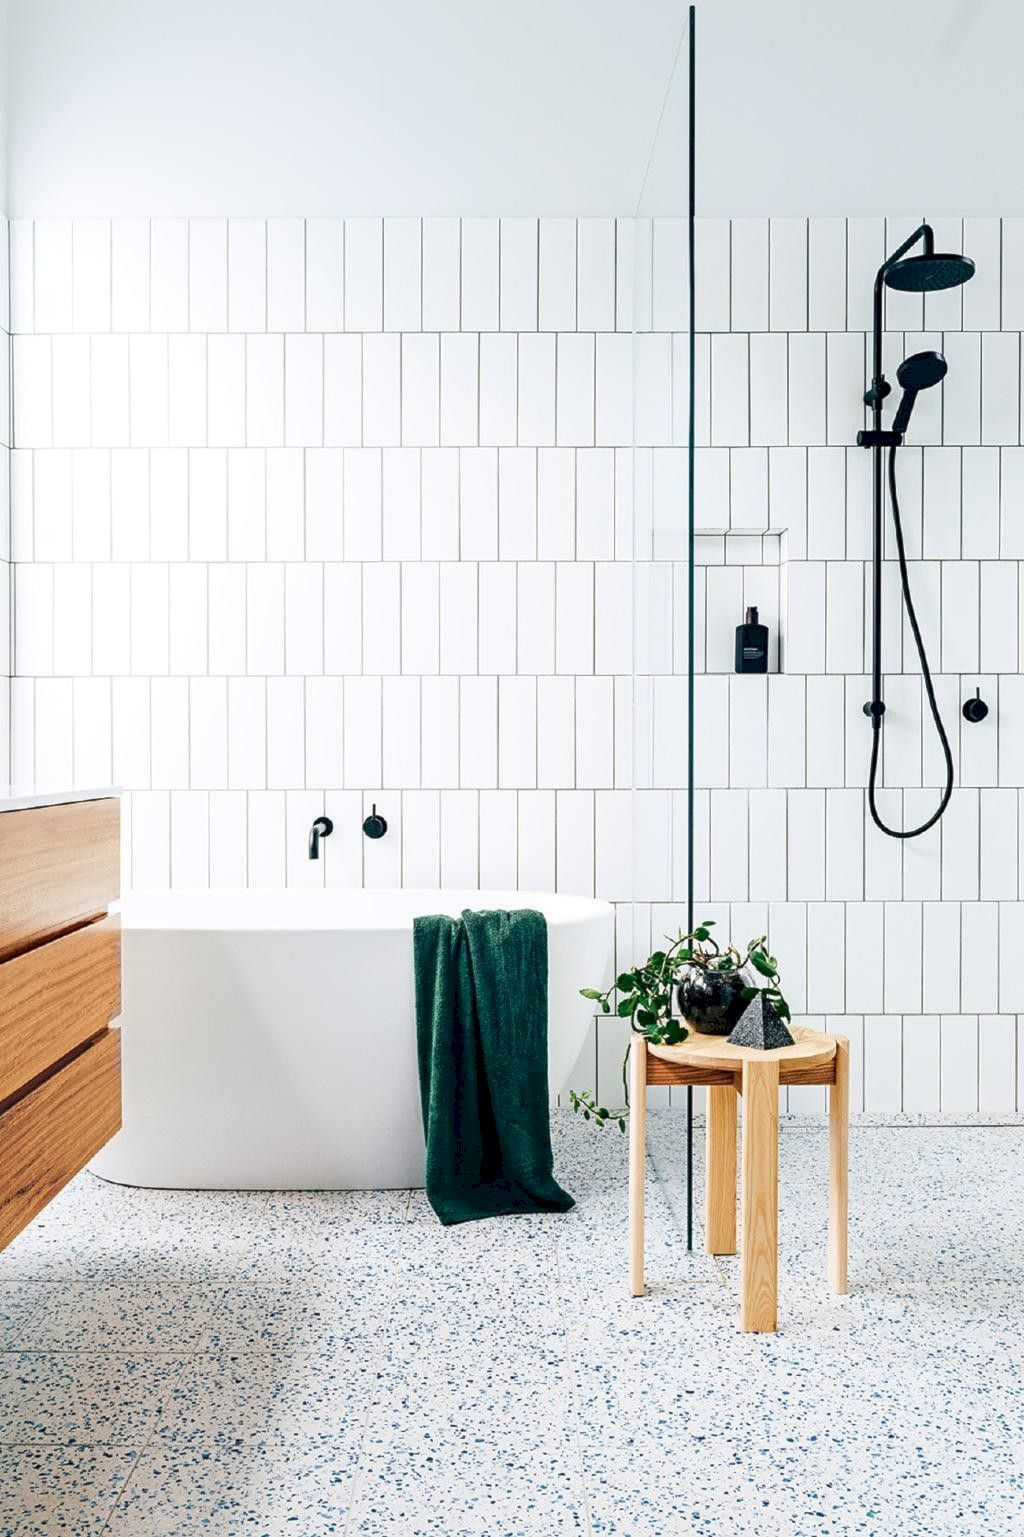 Creative bathroom updates mixing modern trend with simple 60s terrazzo style giving a brilliant contemporary balance Image 17